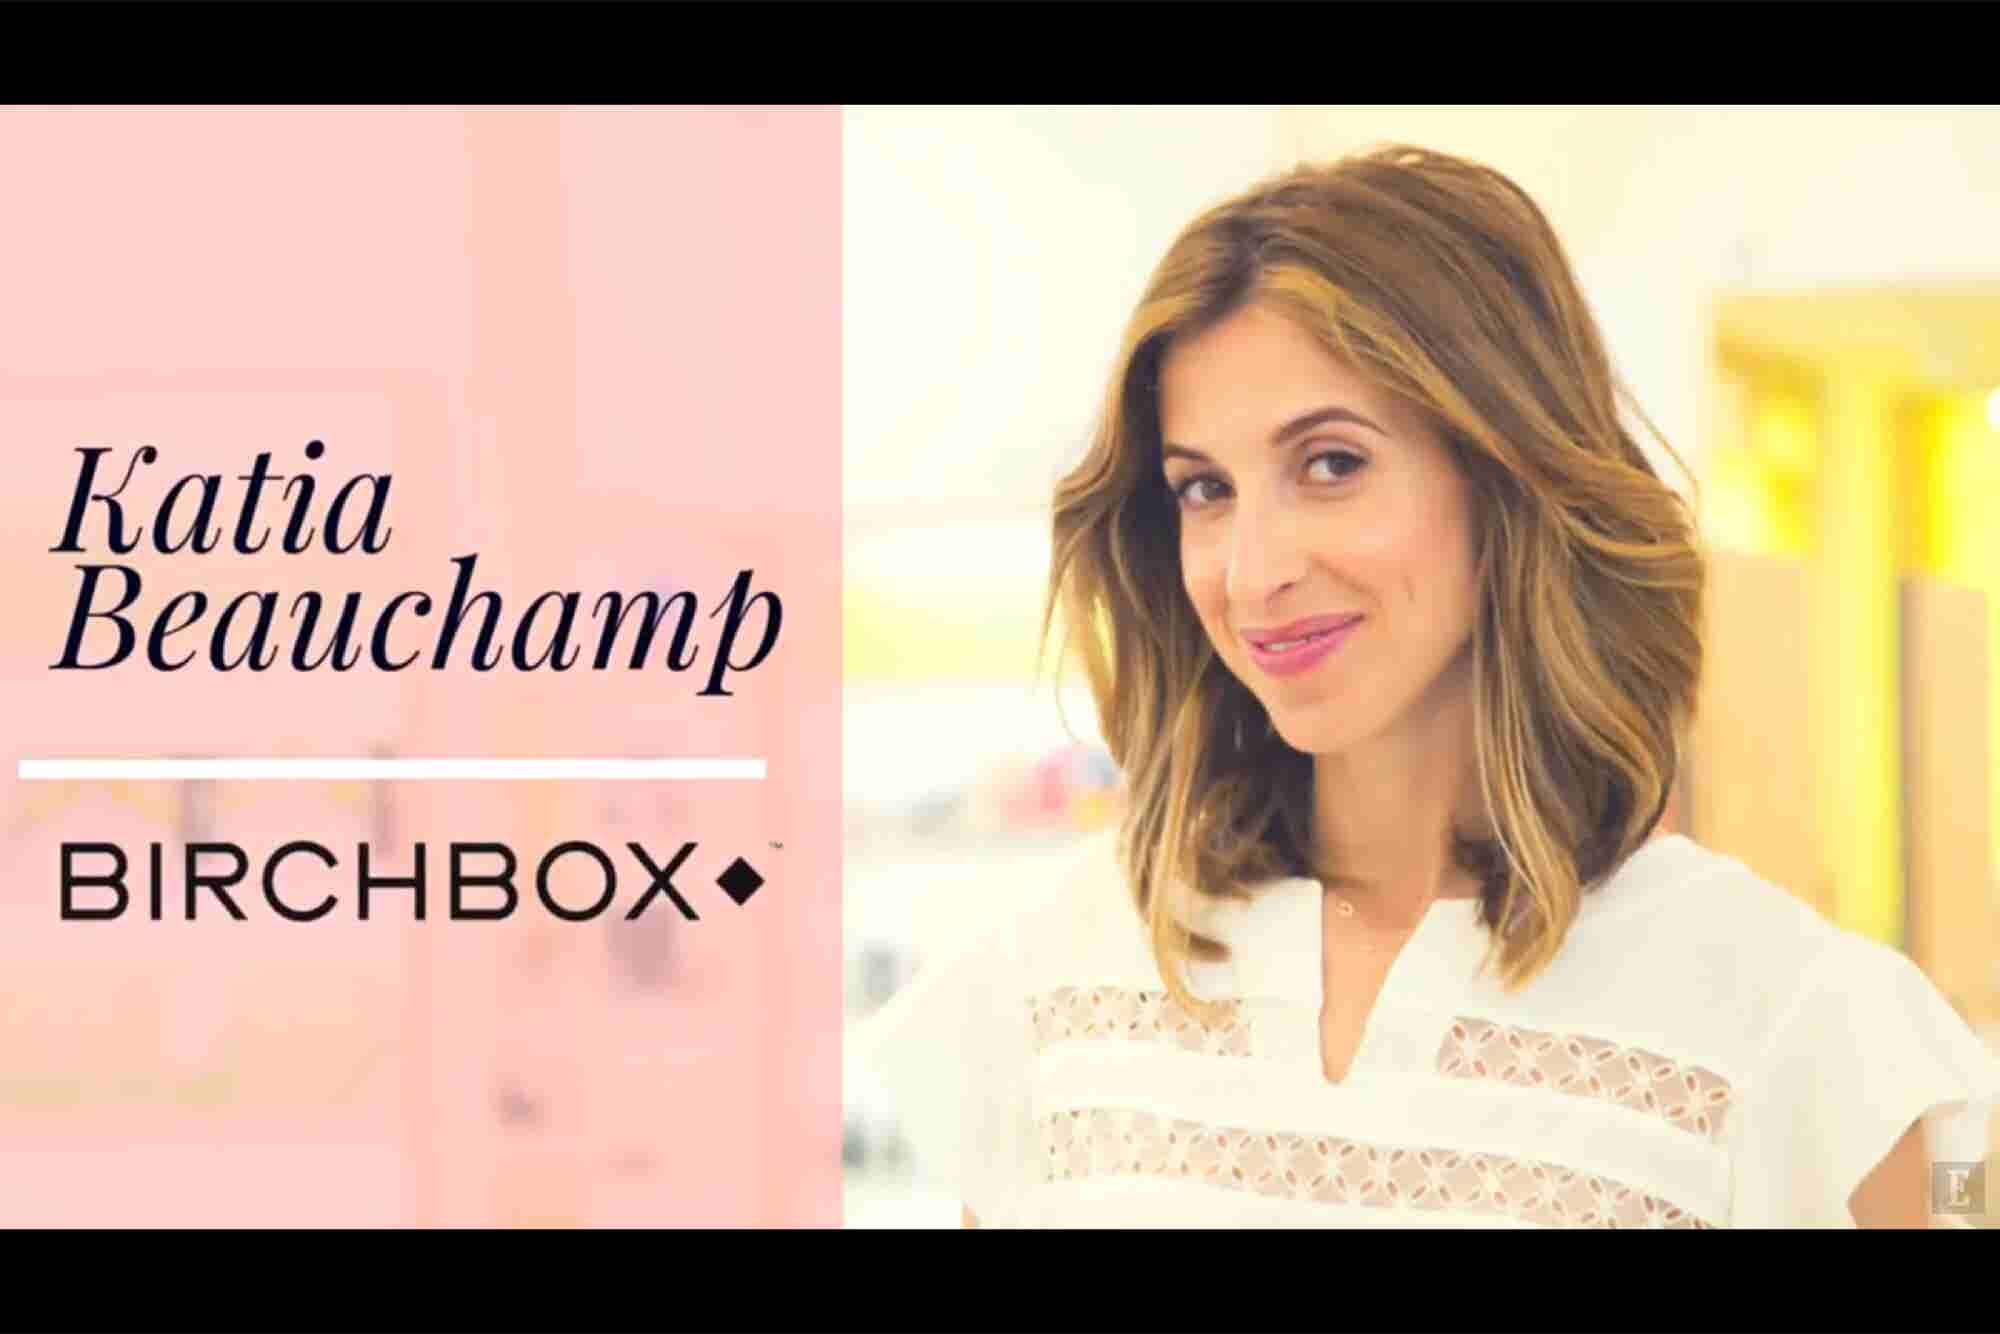 How Birchbox Valued Service Over Sales, and How That Shaped Its Busine...